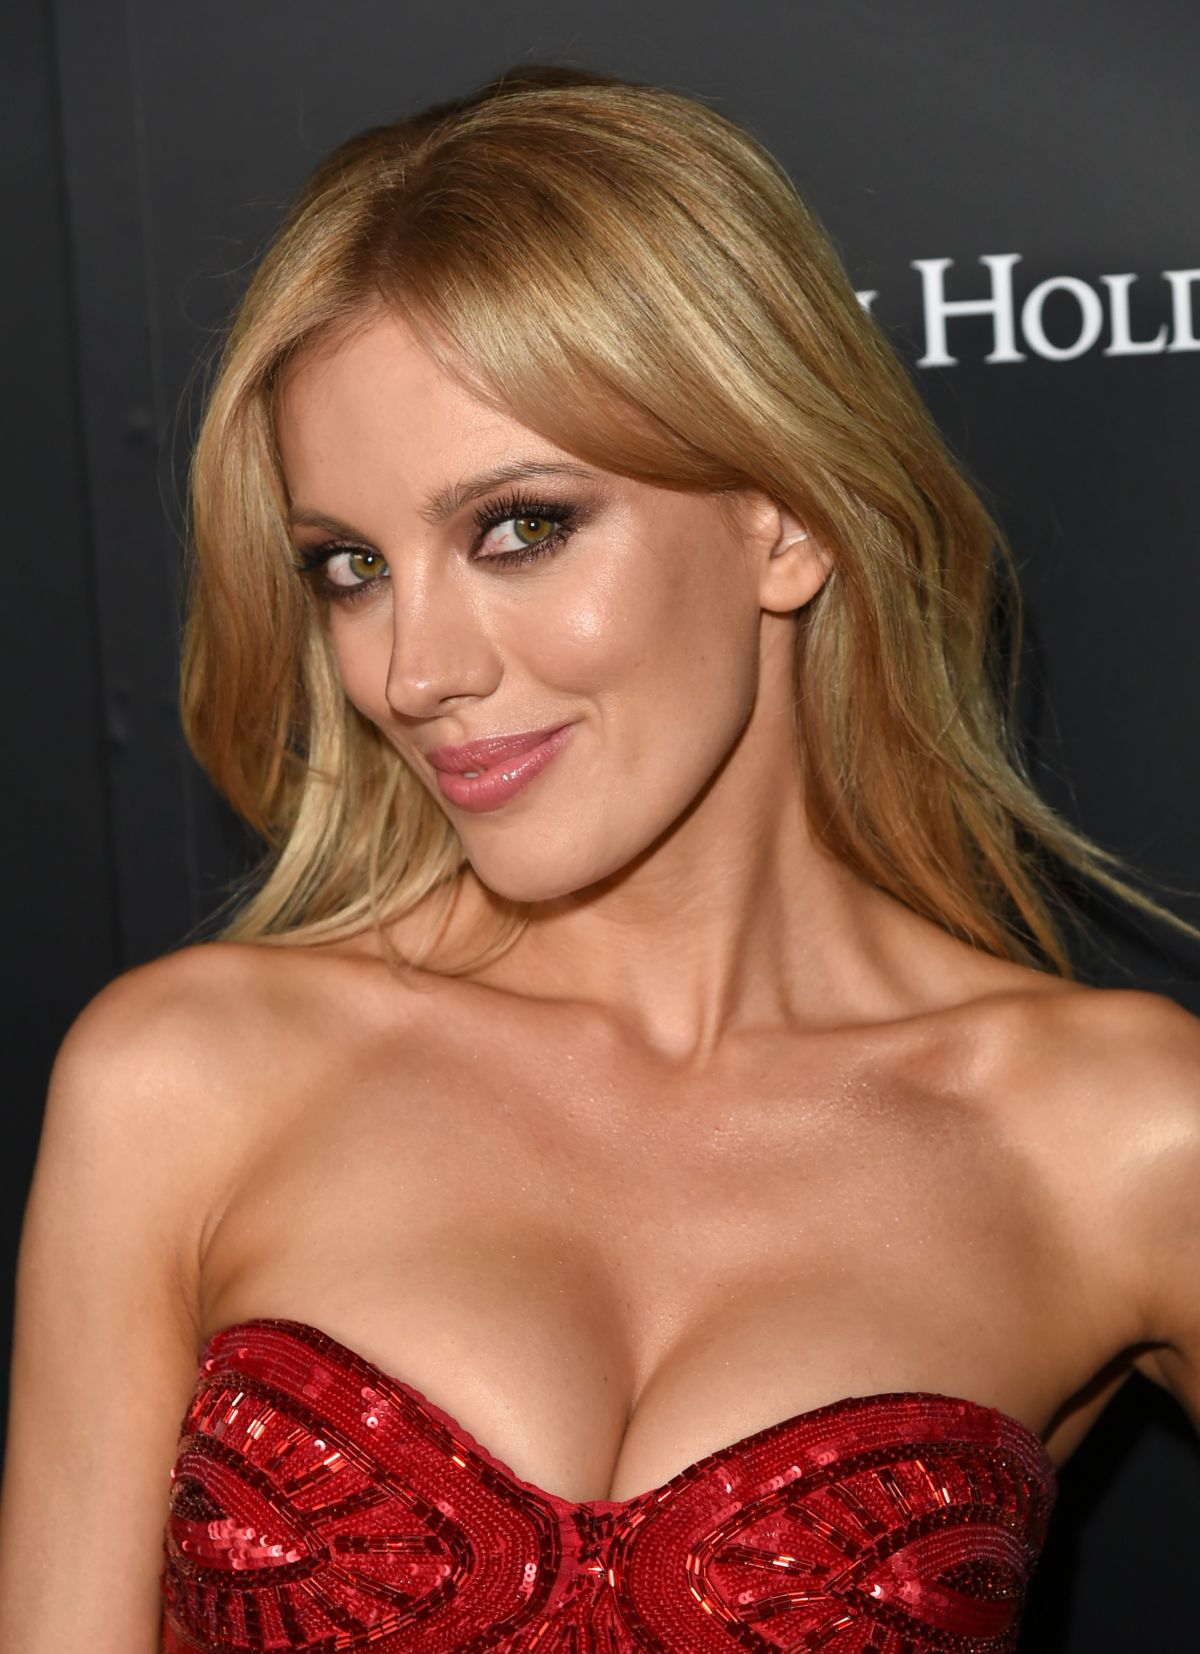 BAR PALY at Maxim's Hot 100 Women of 2014 Celebration in West Hollywood